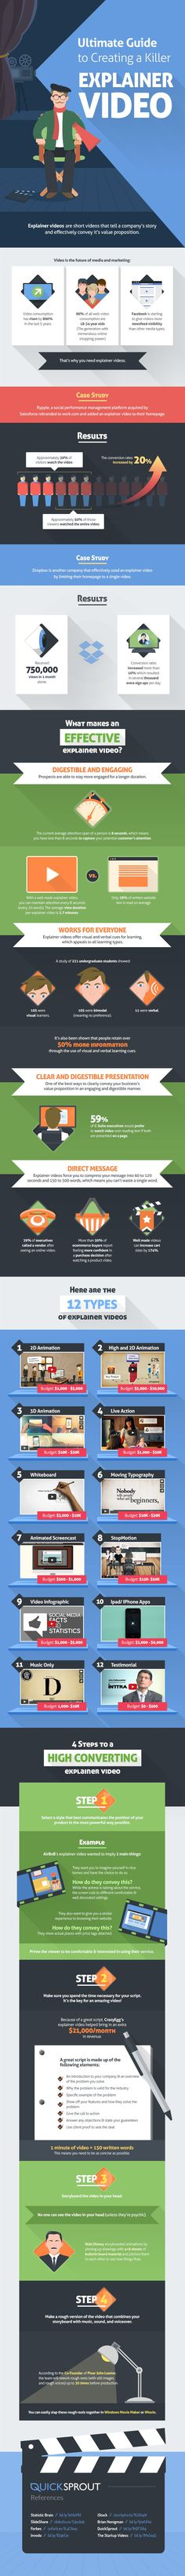 The Ultimate Guide to Creating a Killer Explainer #Video - Feb 27, 2015 #homeimprovementintro,